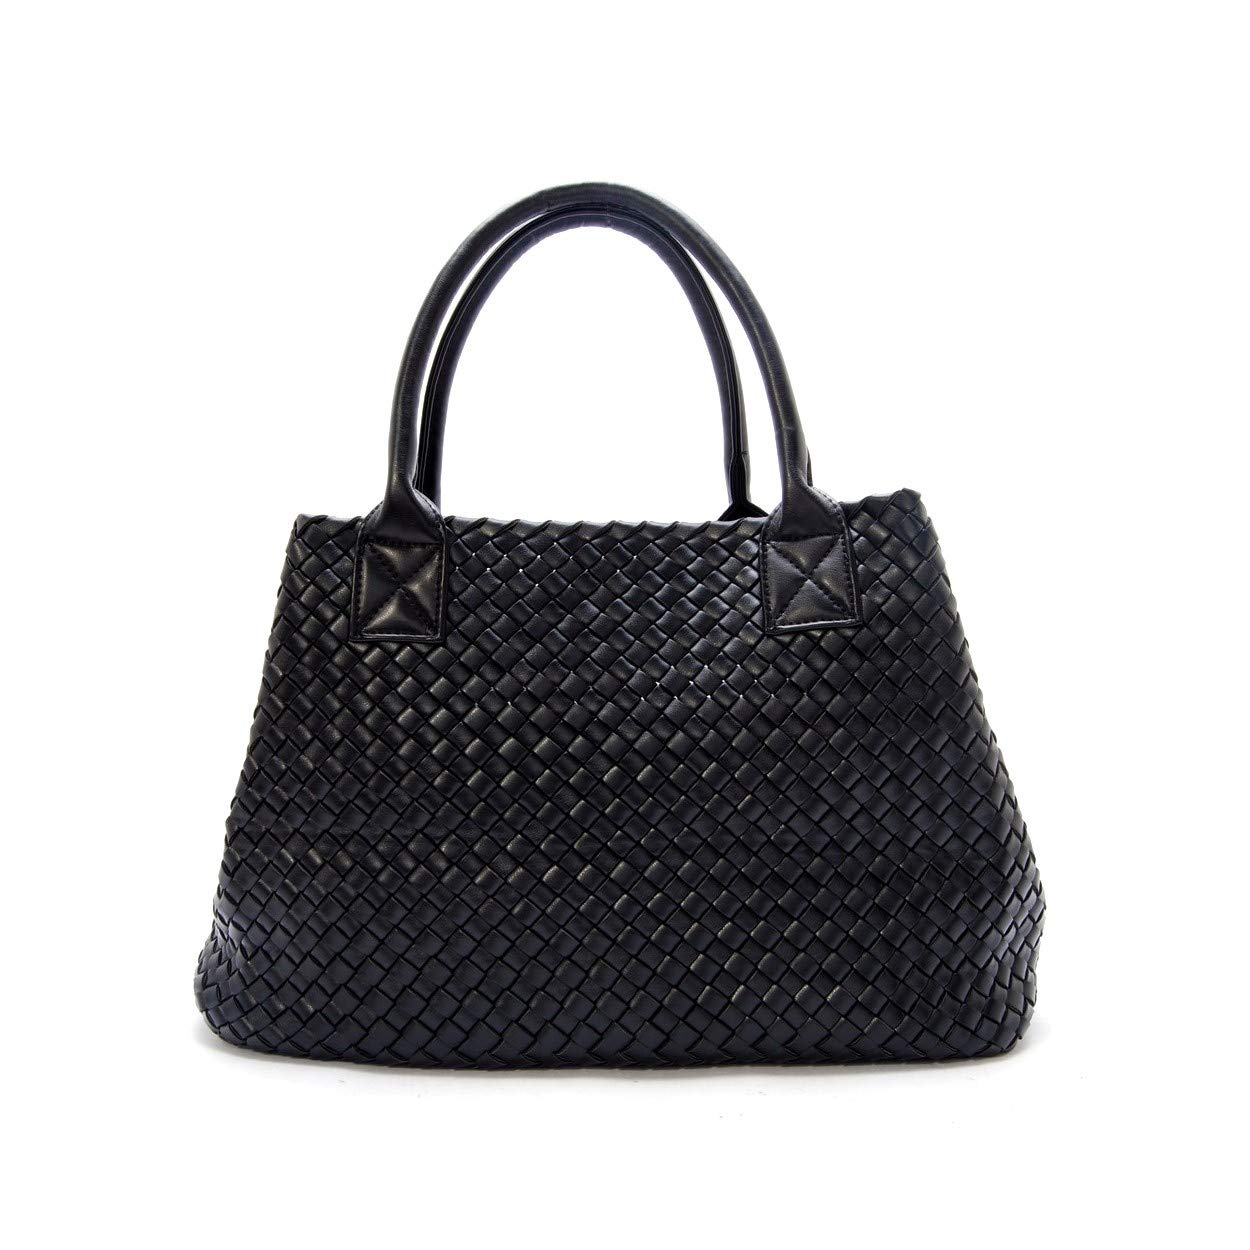 ShouJiao Women Woven Bag Double Colors with Inner Pouch Large Size Purse Weave Leather Handbag